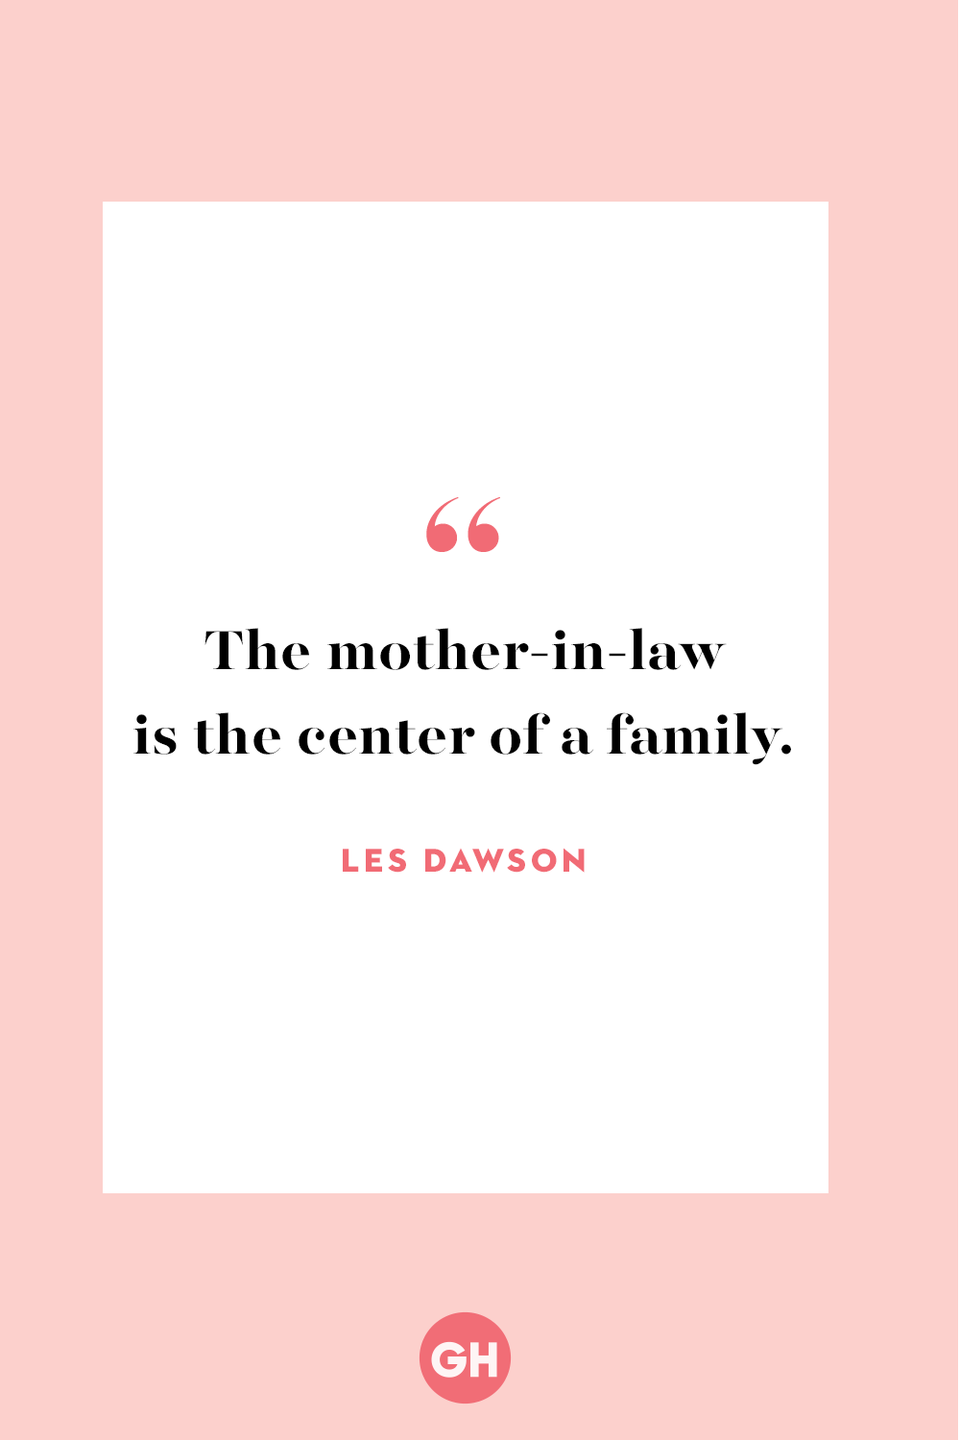 <p>The mother-in-law is the center of a family.</p>